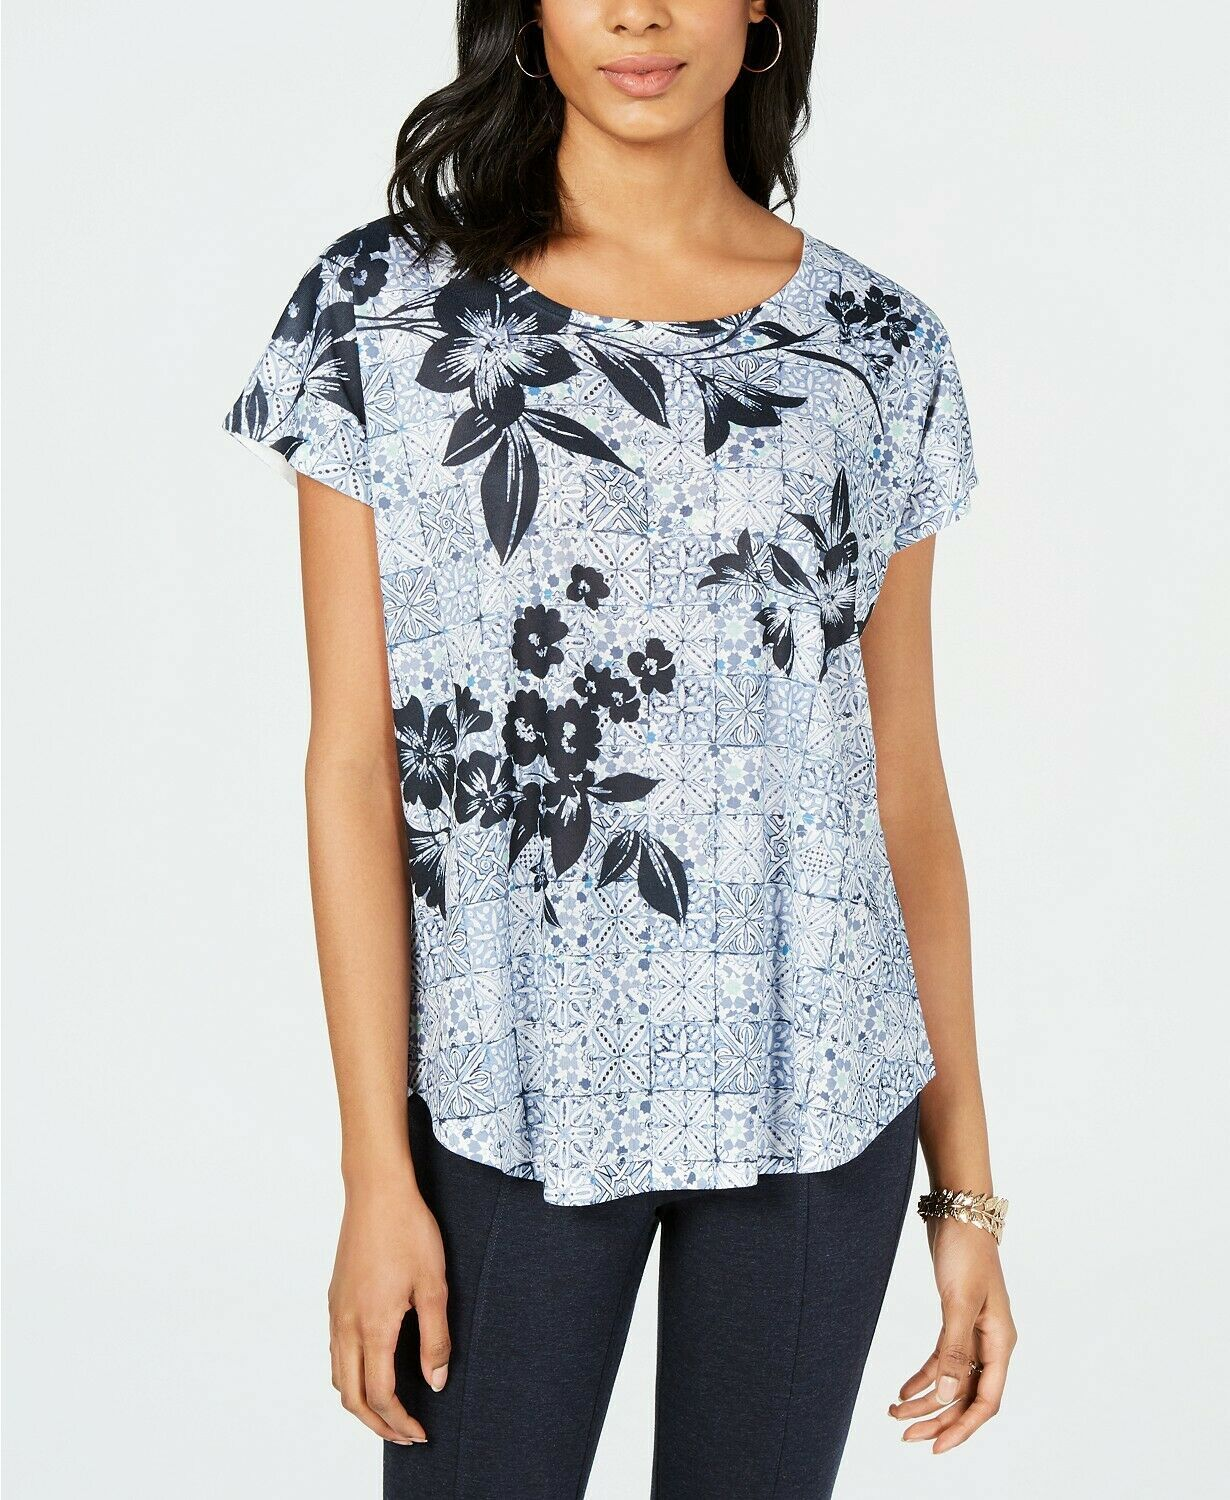 Primary image for Style & Co. Women's Blue Short-Sleeve Printed Dolman Top Petite Size PM $29